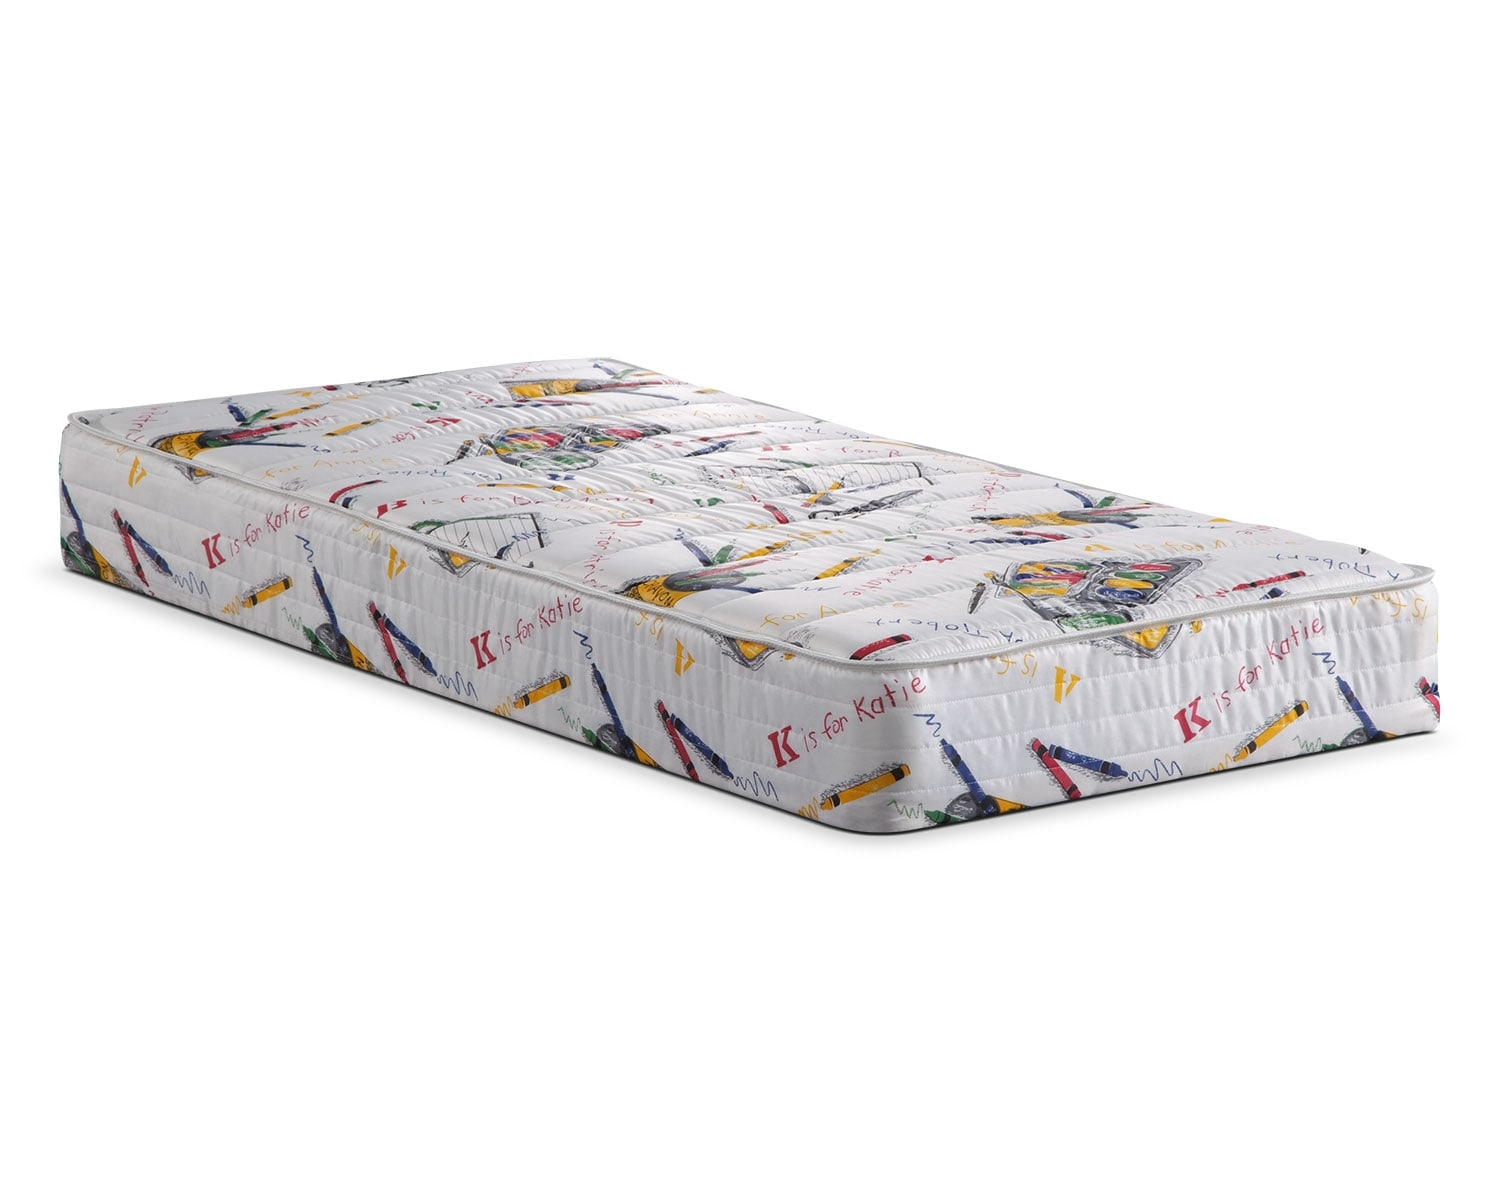 Youth Bunkie/Innerspring Mattress Collection